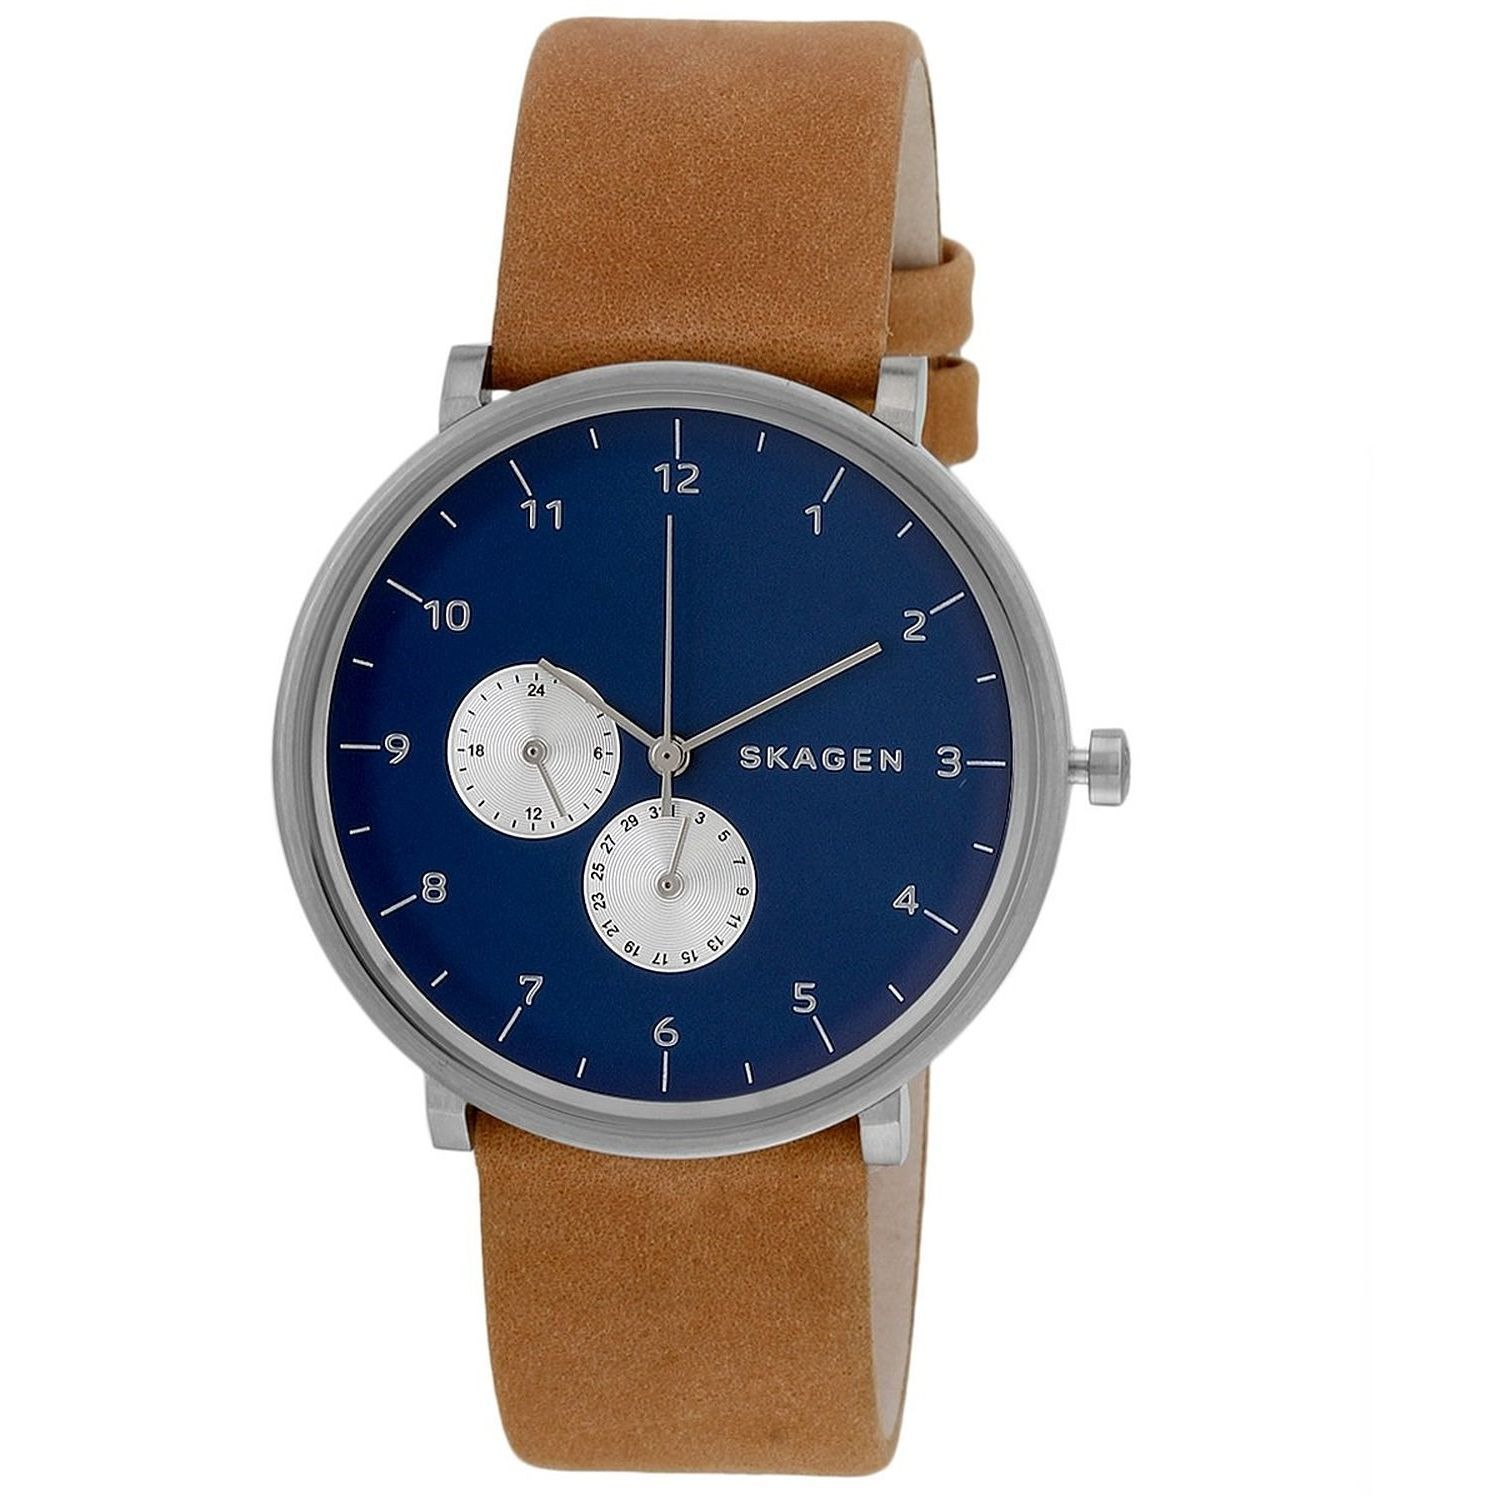 us united wrist watch yoox states item f on elegance smalto watches online women